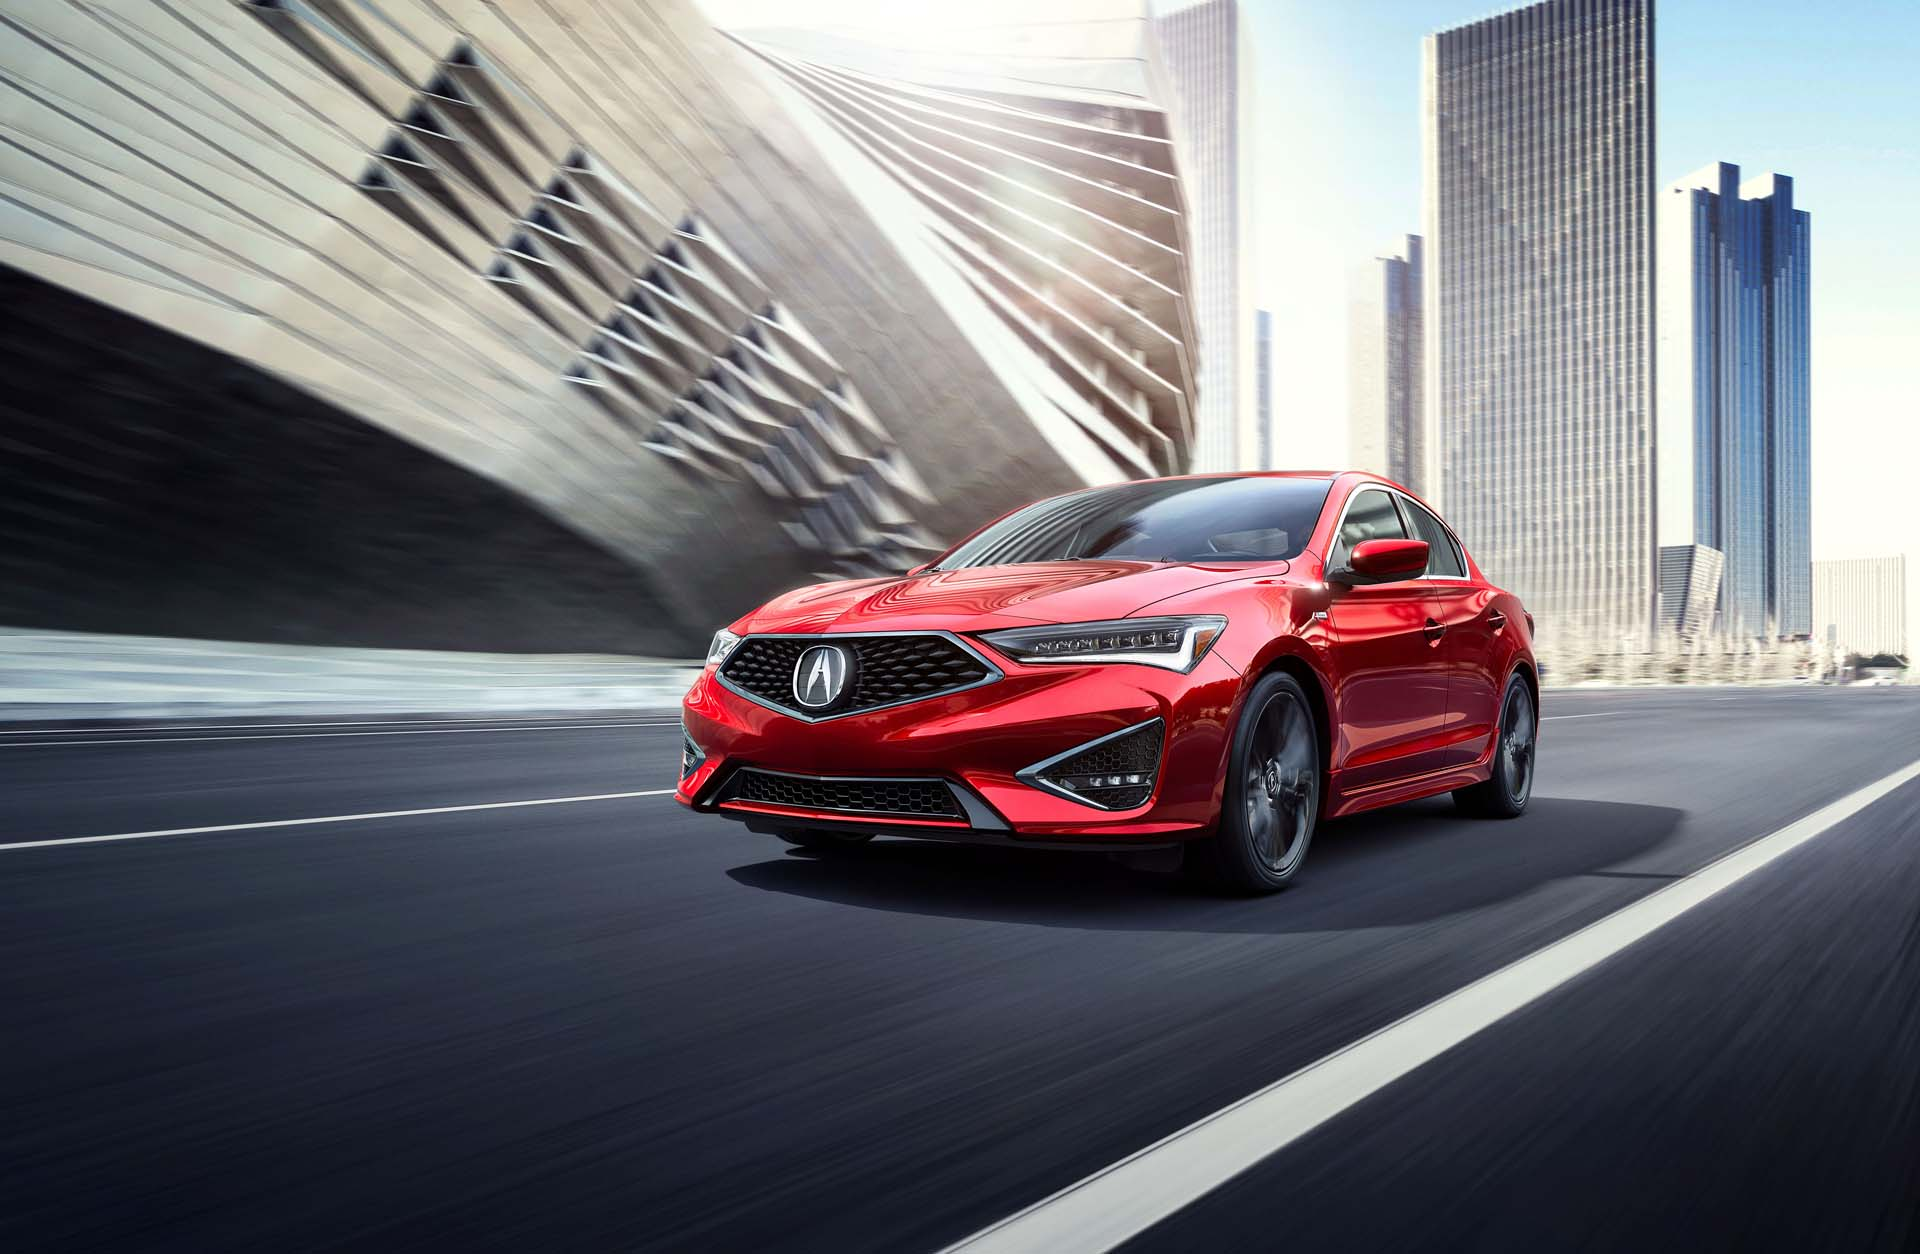 What Safety Features Does the 2019 Acura ILX Offer?